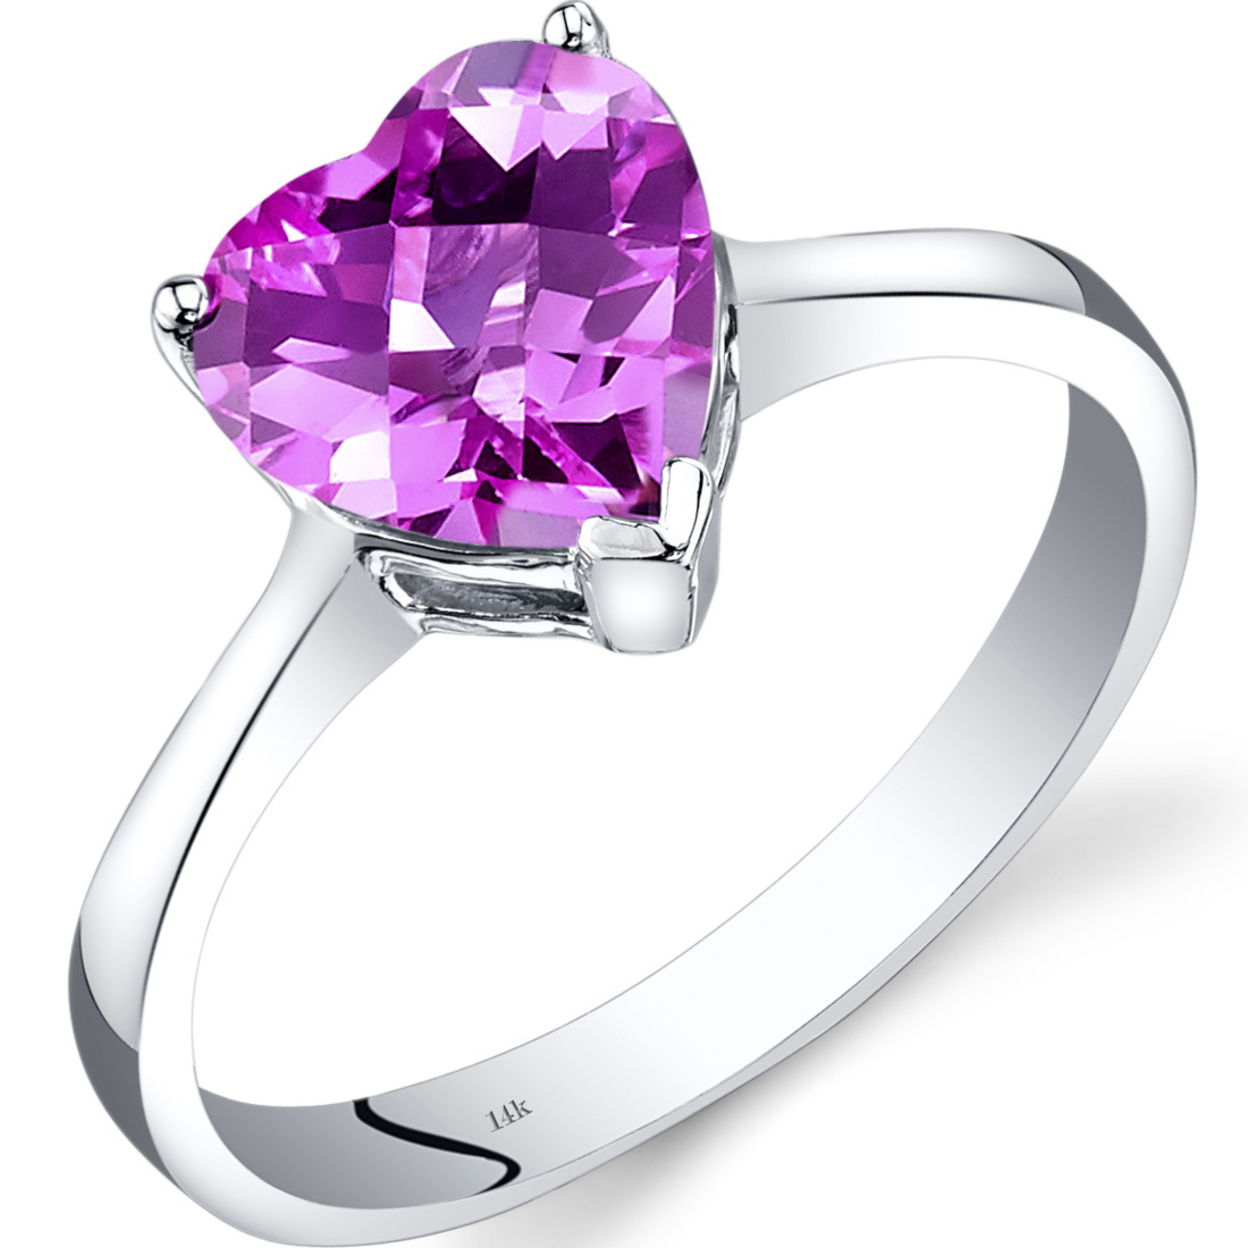 14k White Gold Created Pink Sapphire Heart Solitaire Ring 2.50 Carat R62342